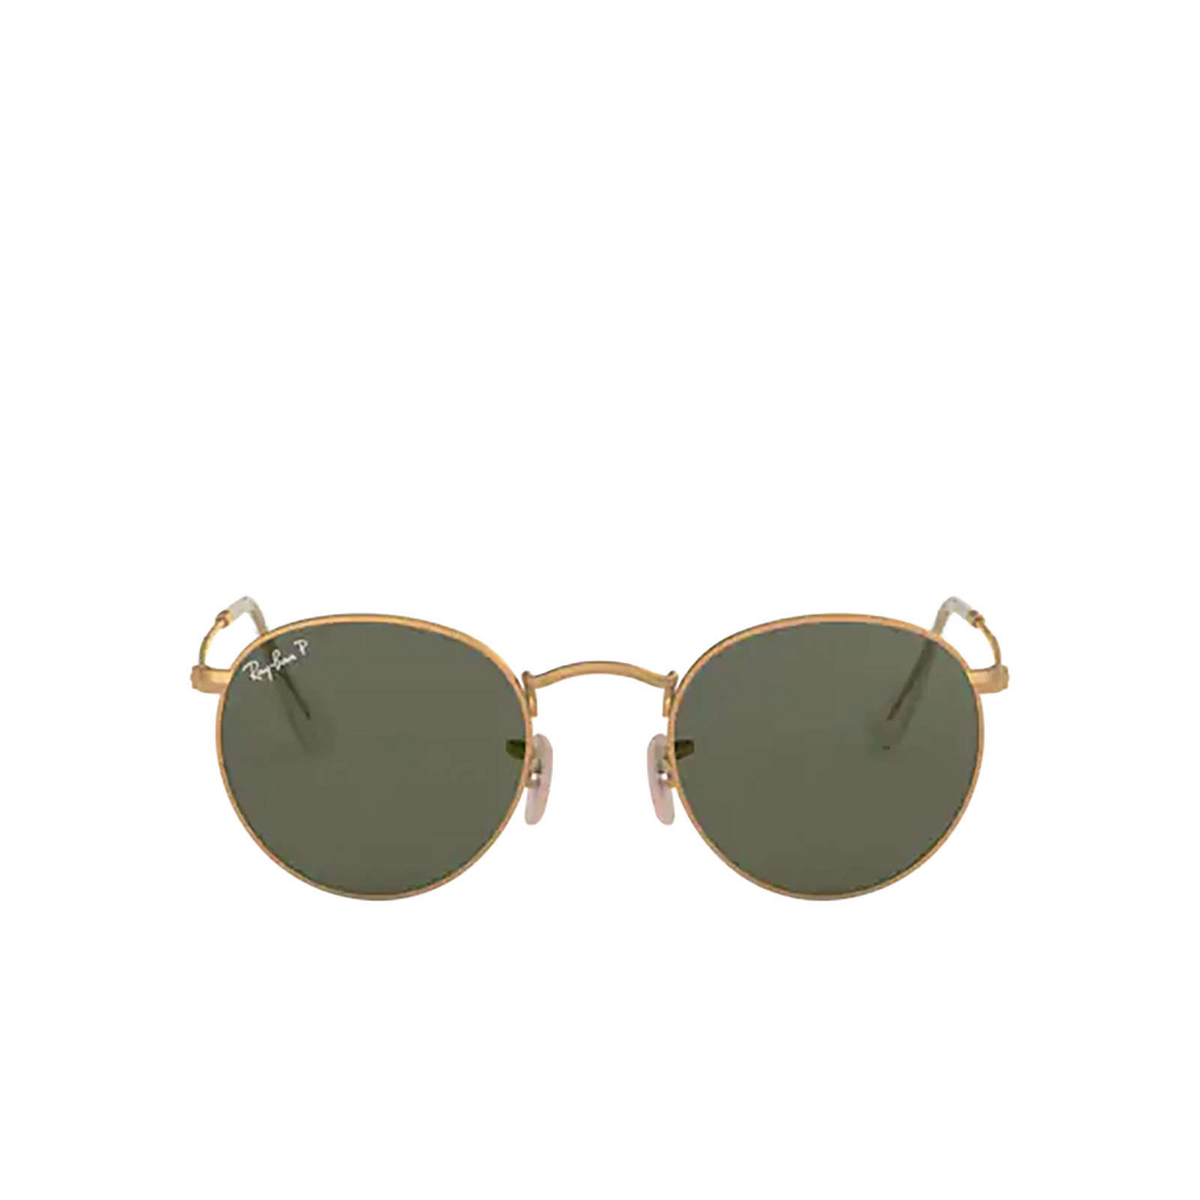 Ray-Ban® Round Sunglasses: Round Metal RB3447 color Matte Arista 112/58 - front view.